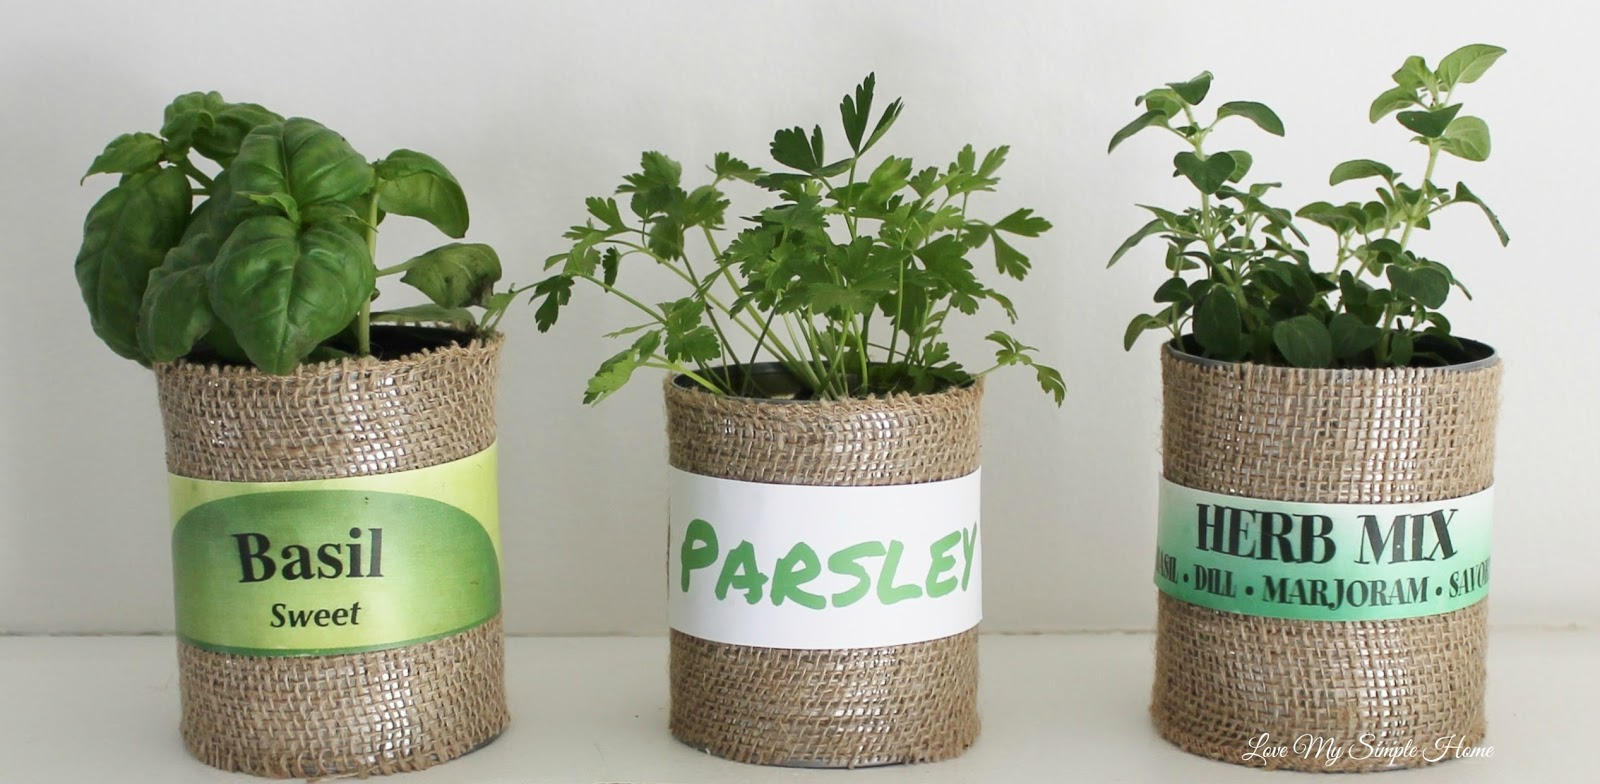 Simple Planters Diy Herb Planters In Up Cycled Cans Love My Simple Home